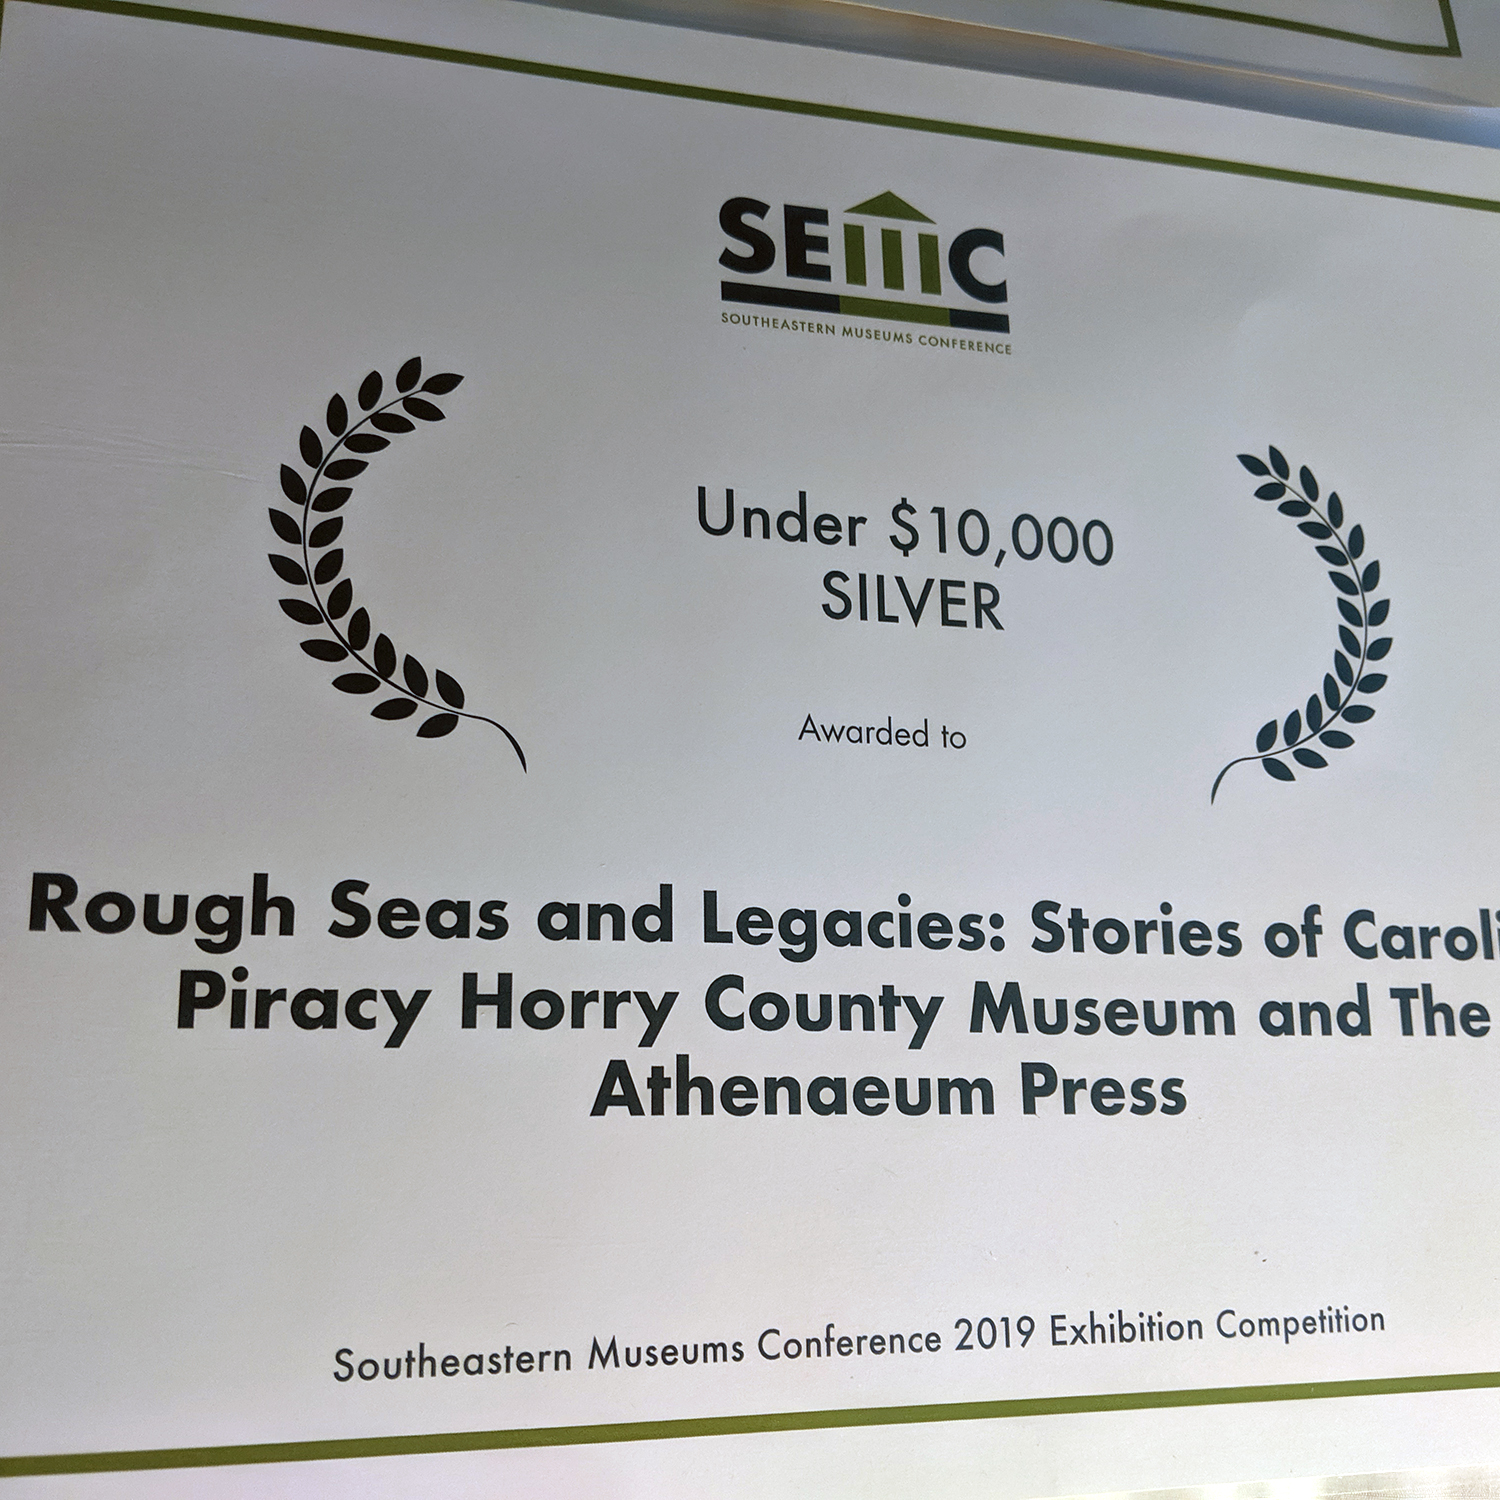 The Athenaeum Press won silver at a museum conference in Charleston.